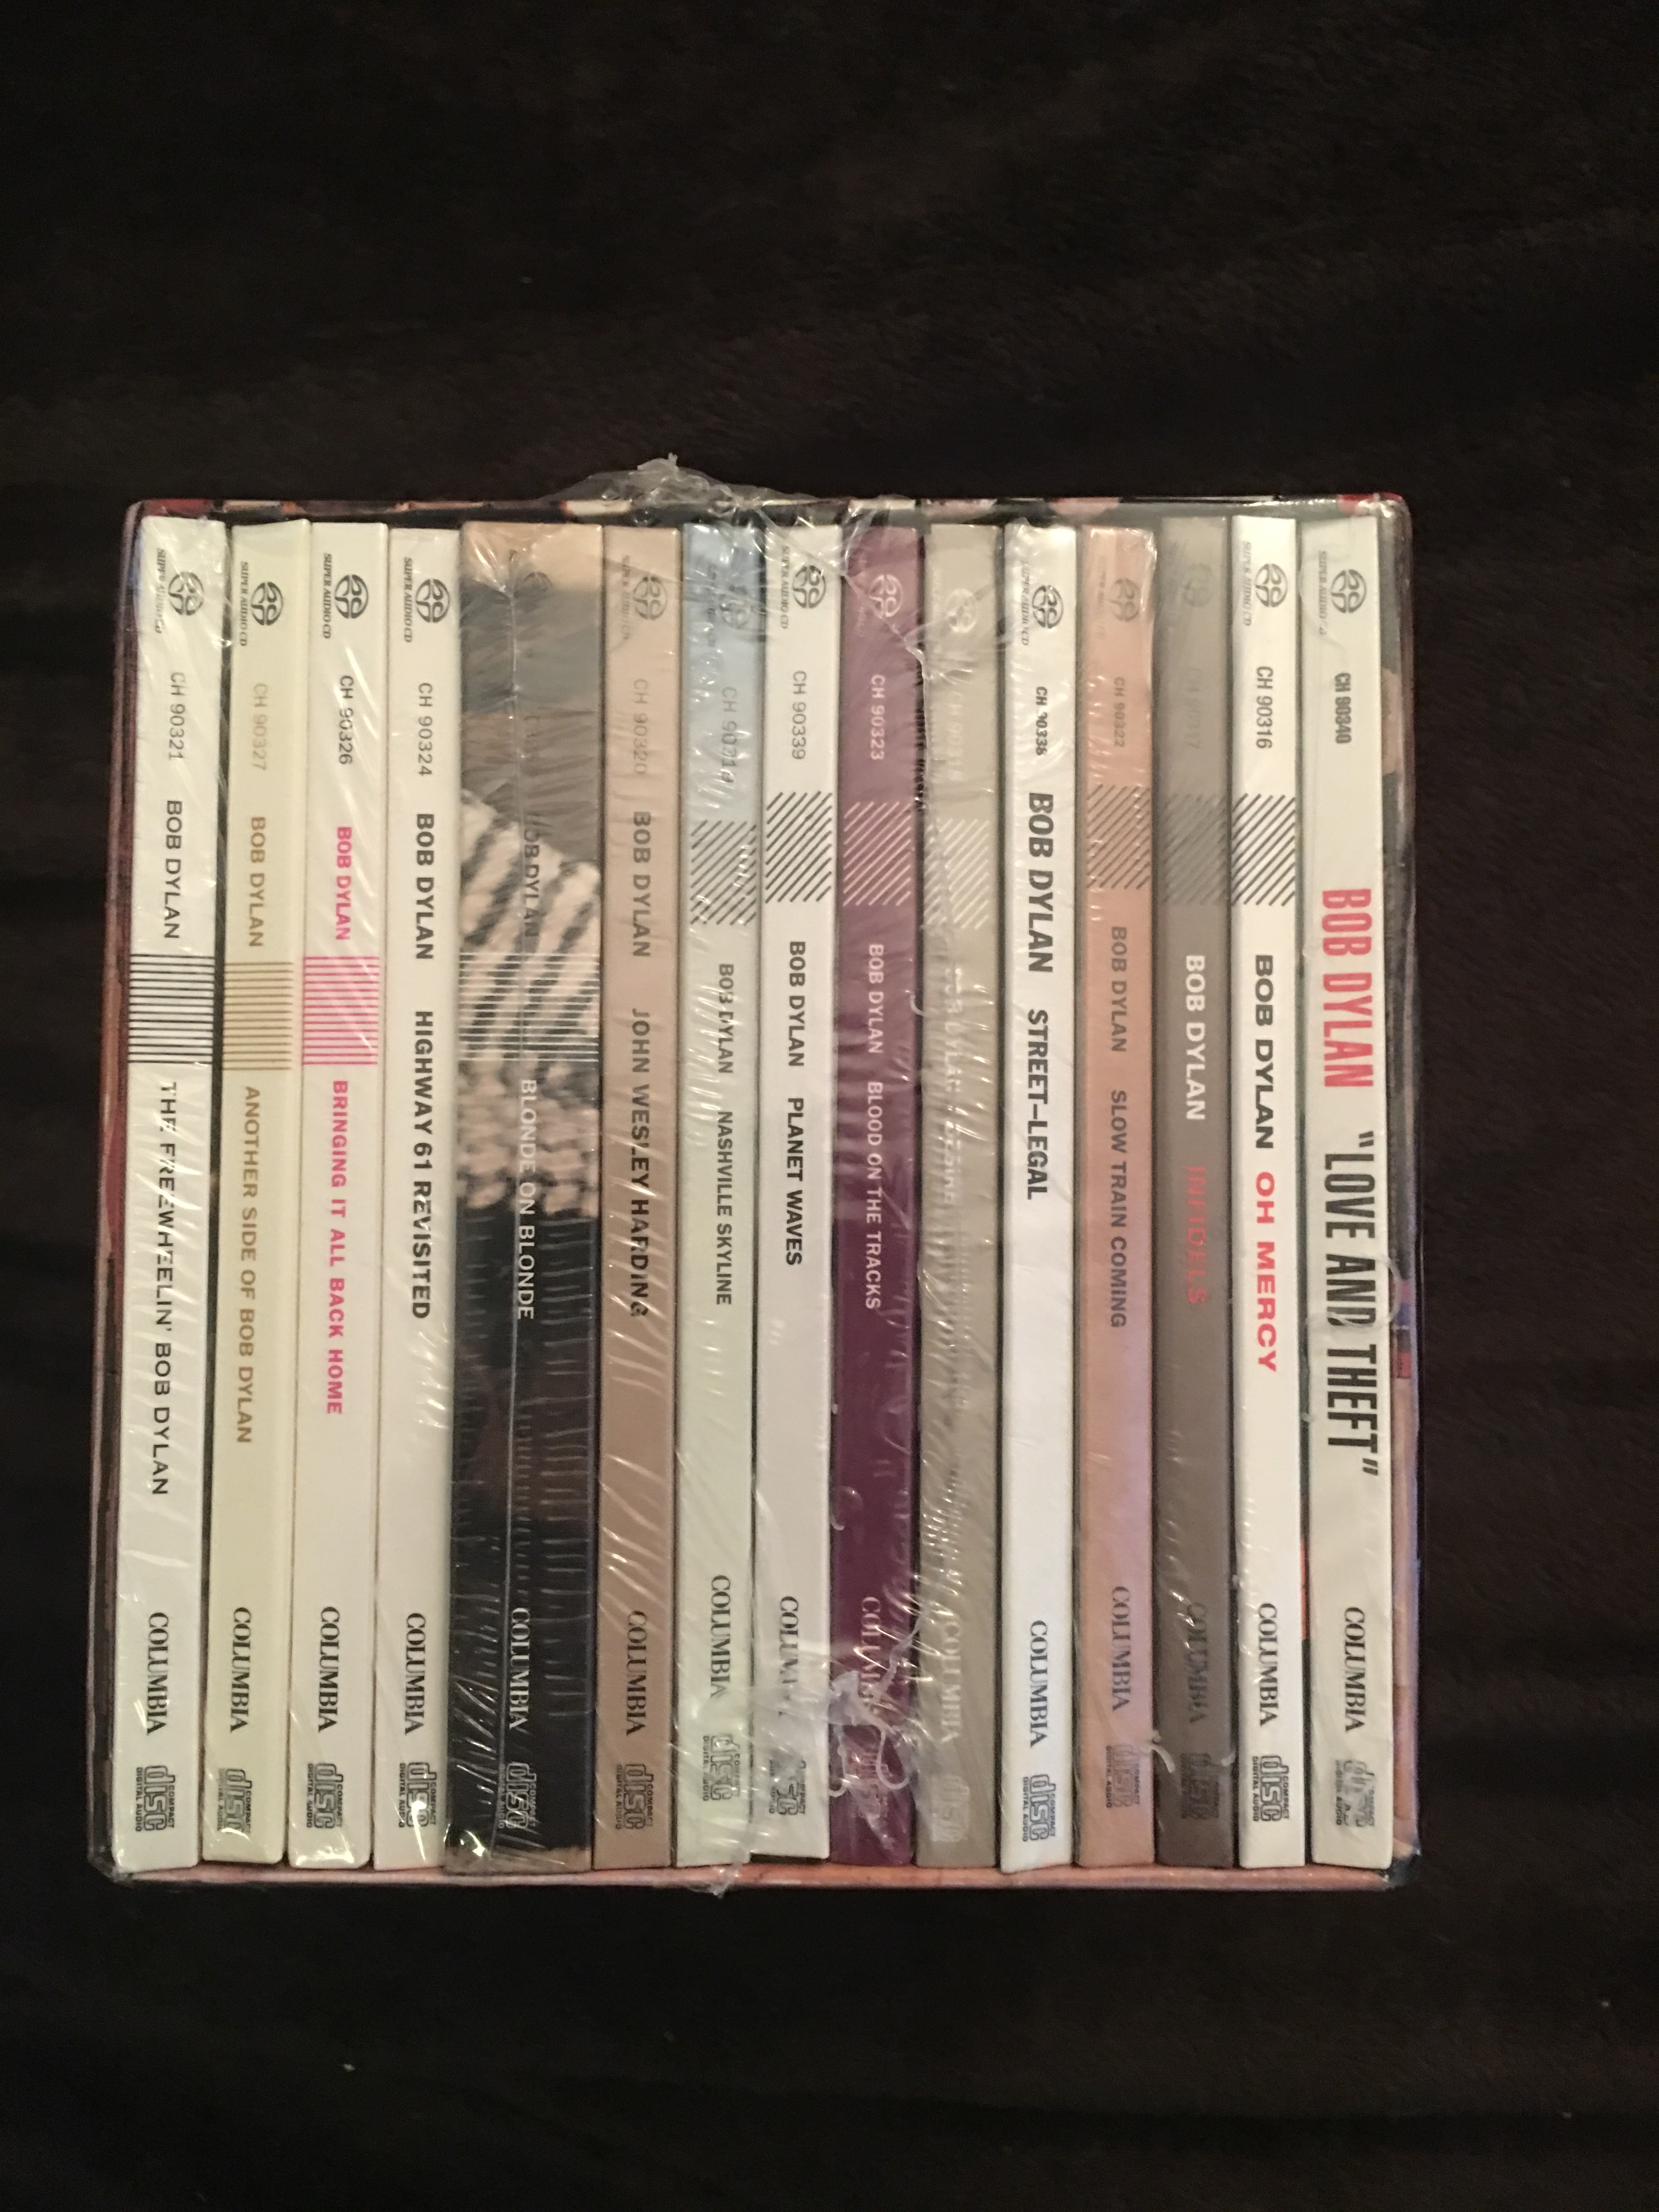 Bob Dylan SACD 16CD Limited Edition Box Set, Brand New, $320 ...